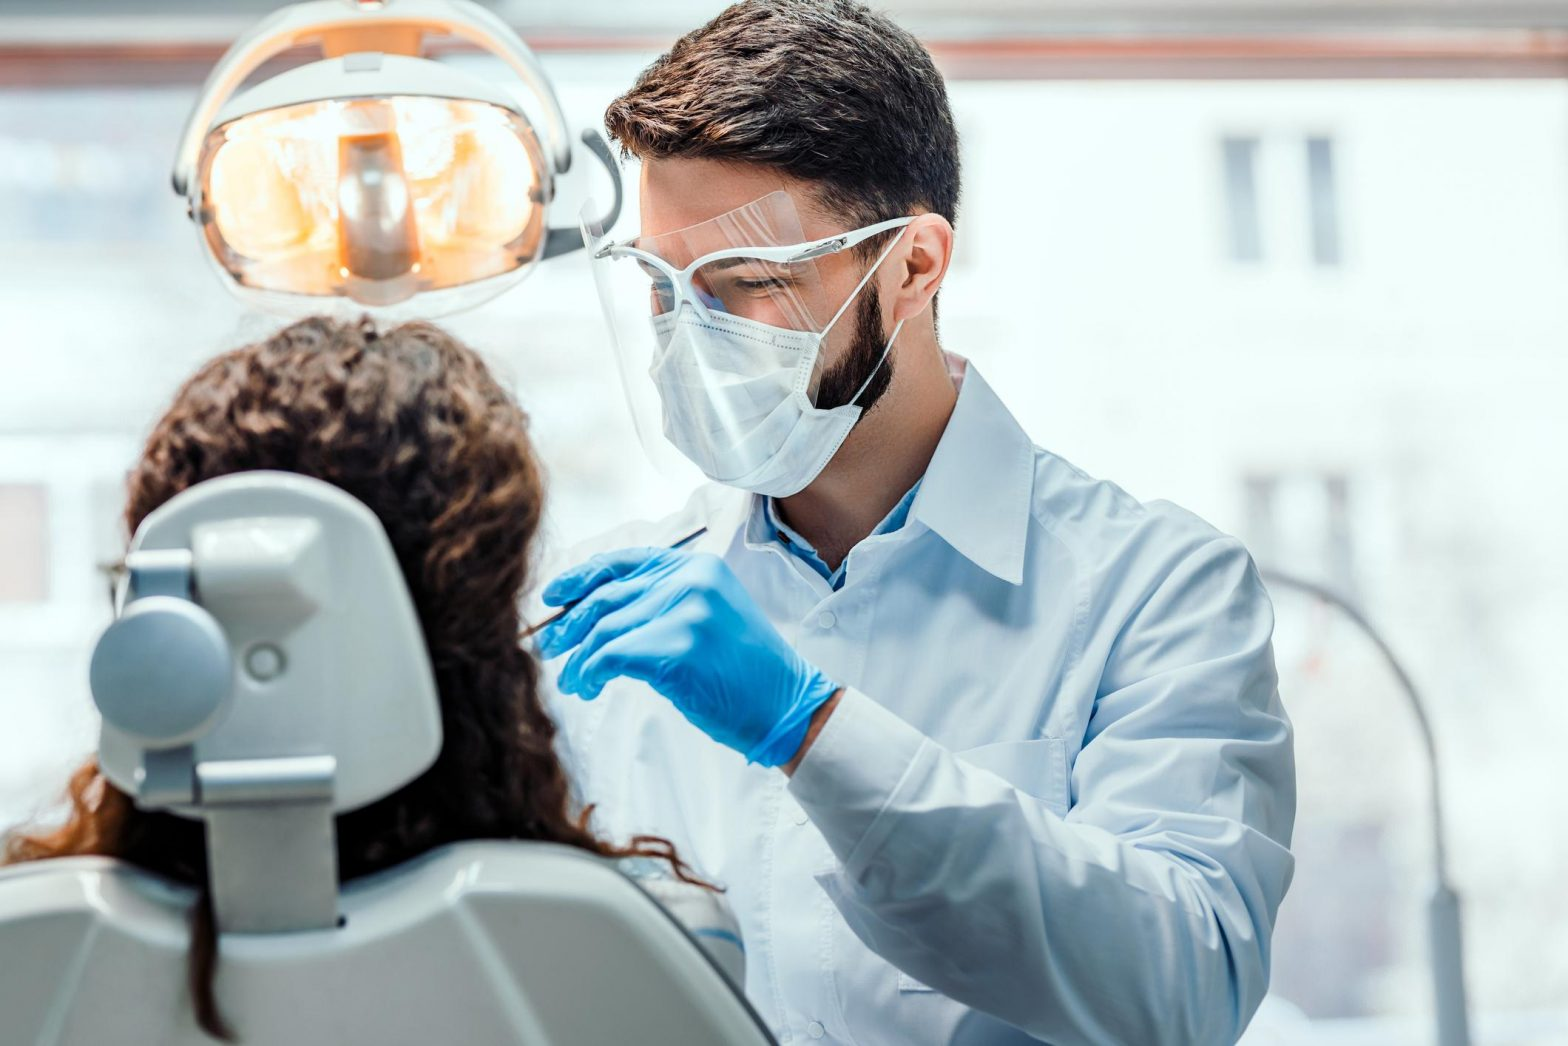 dental treatment with safety precautions